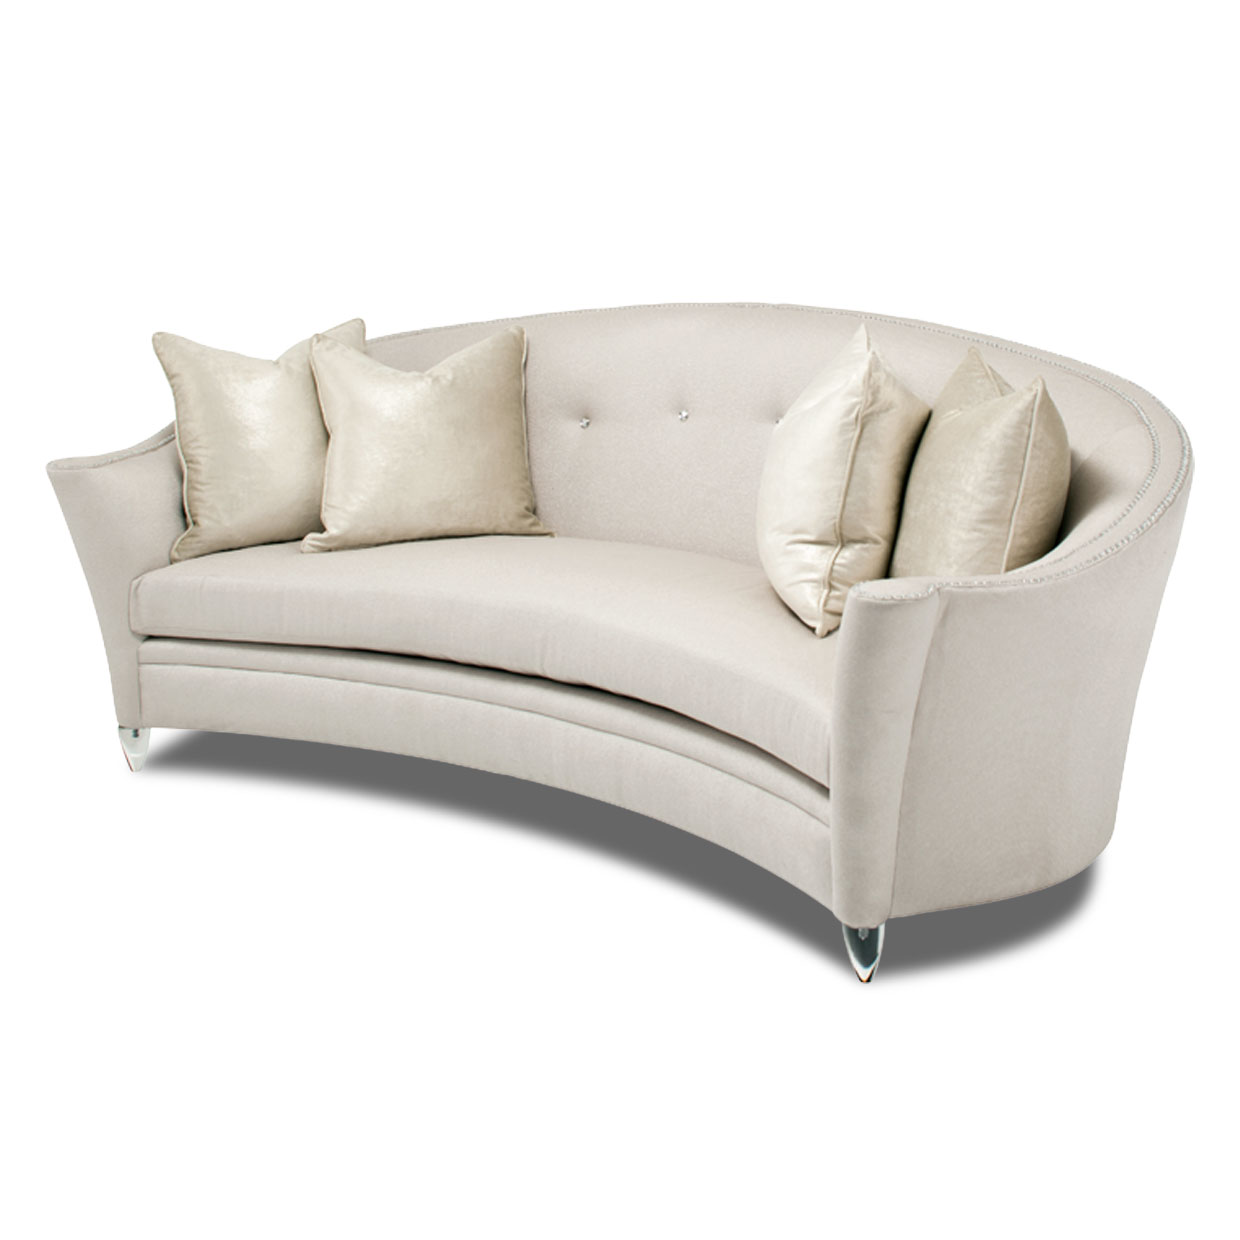 Bel Air Park Sofa